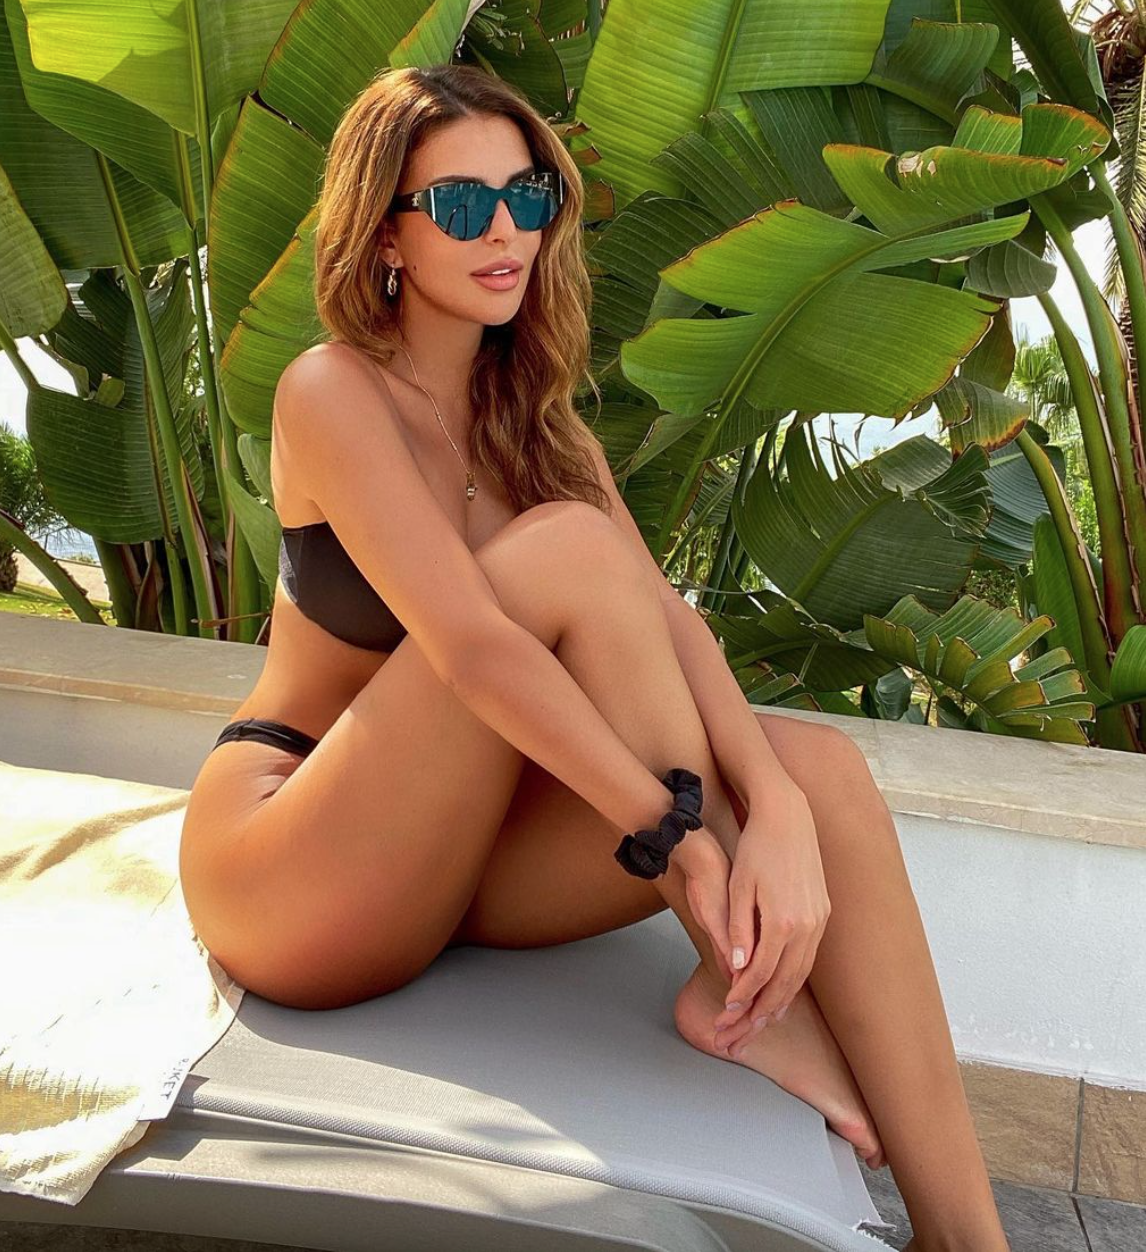 Beauty queen Sarah Chafak lights up Instagram with her stylish pictures